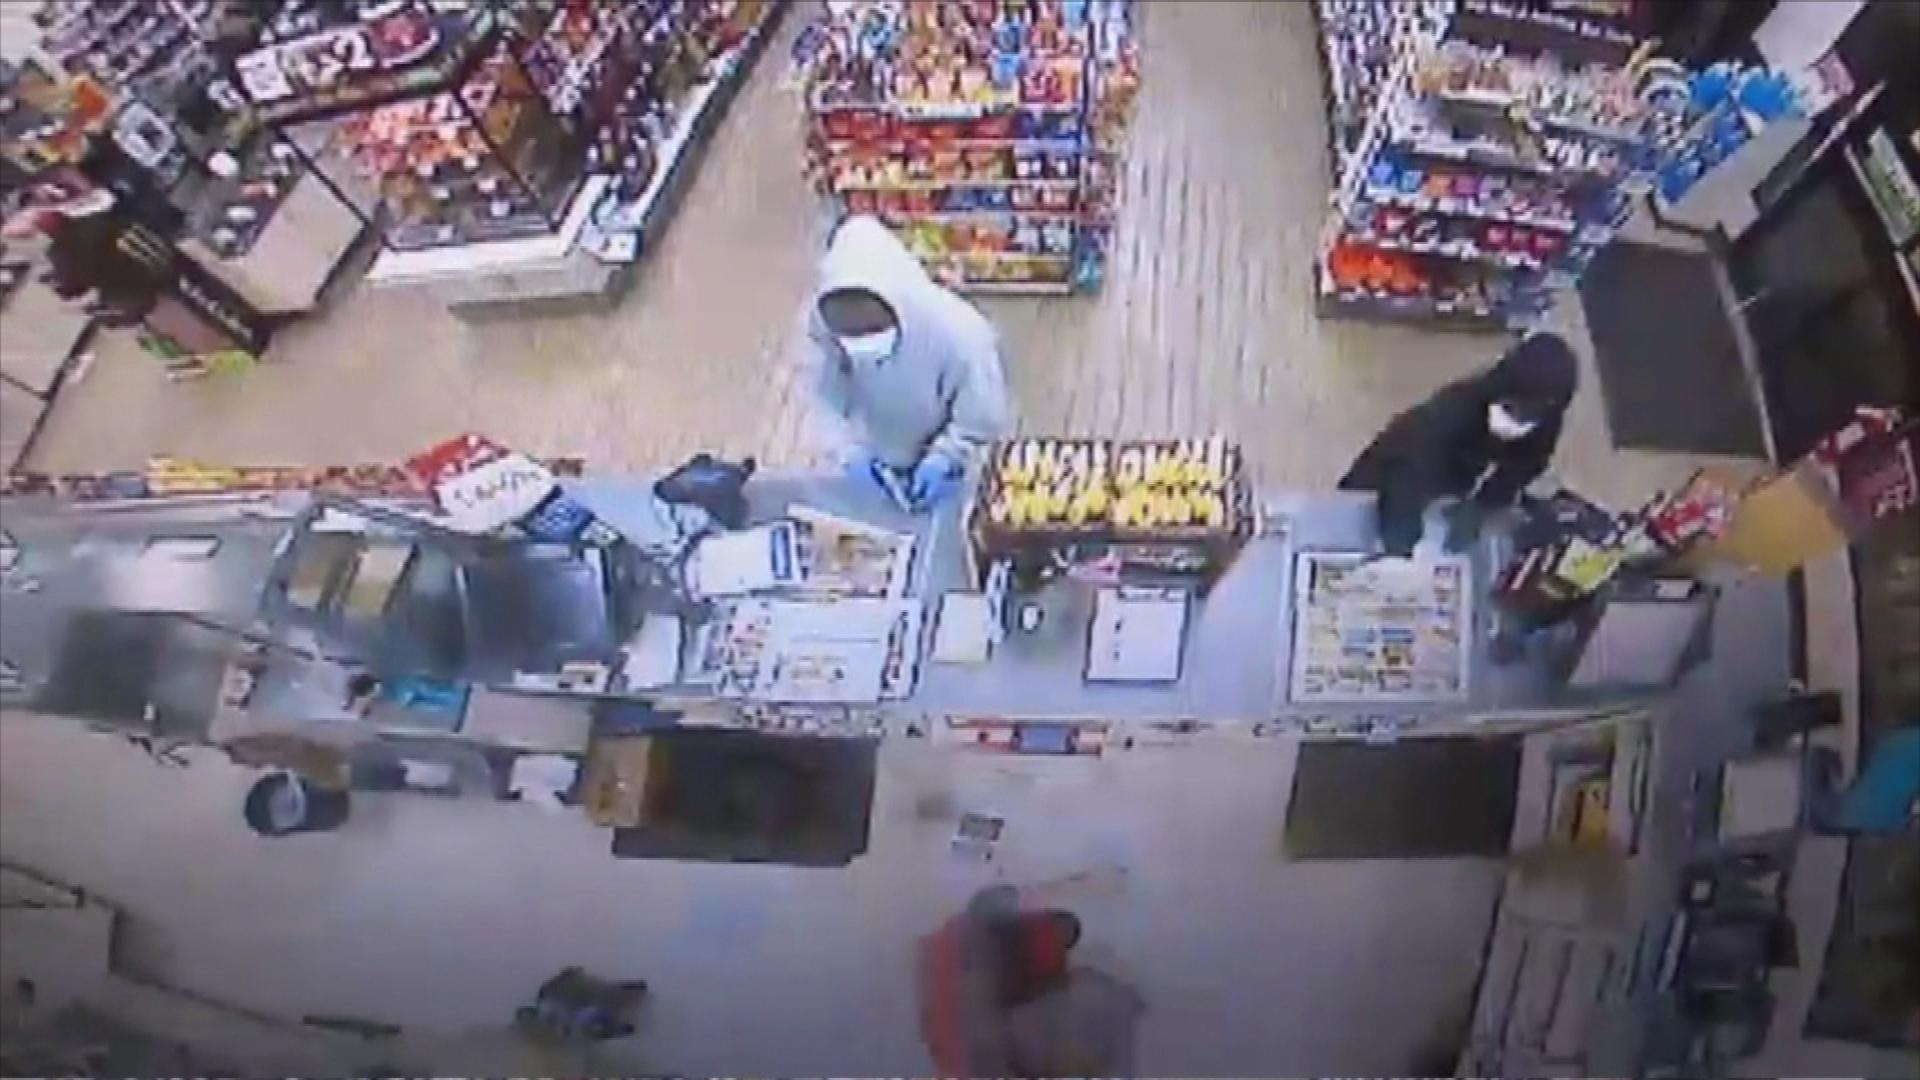 The 7-Eleven robbery at 6th and Josephine (credit: Denver Police Department)